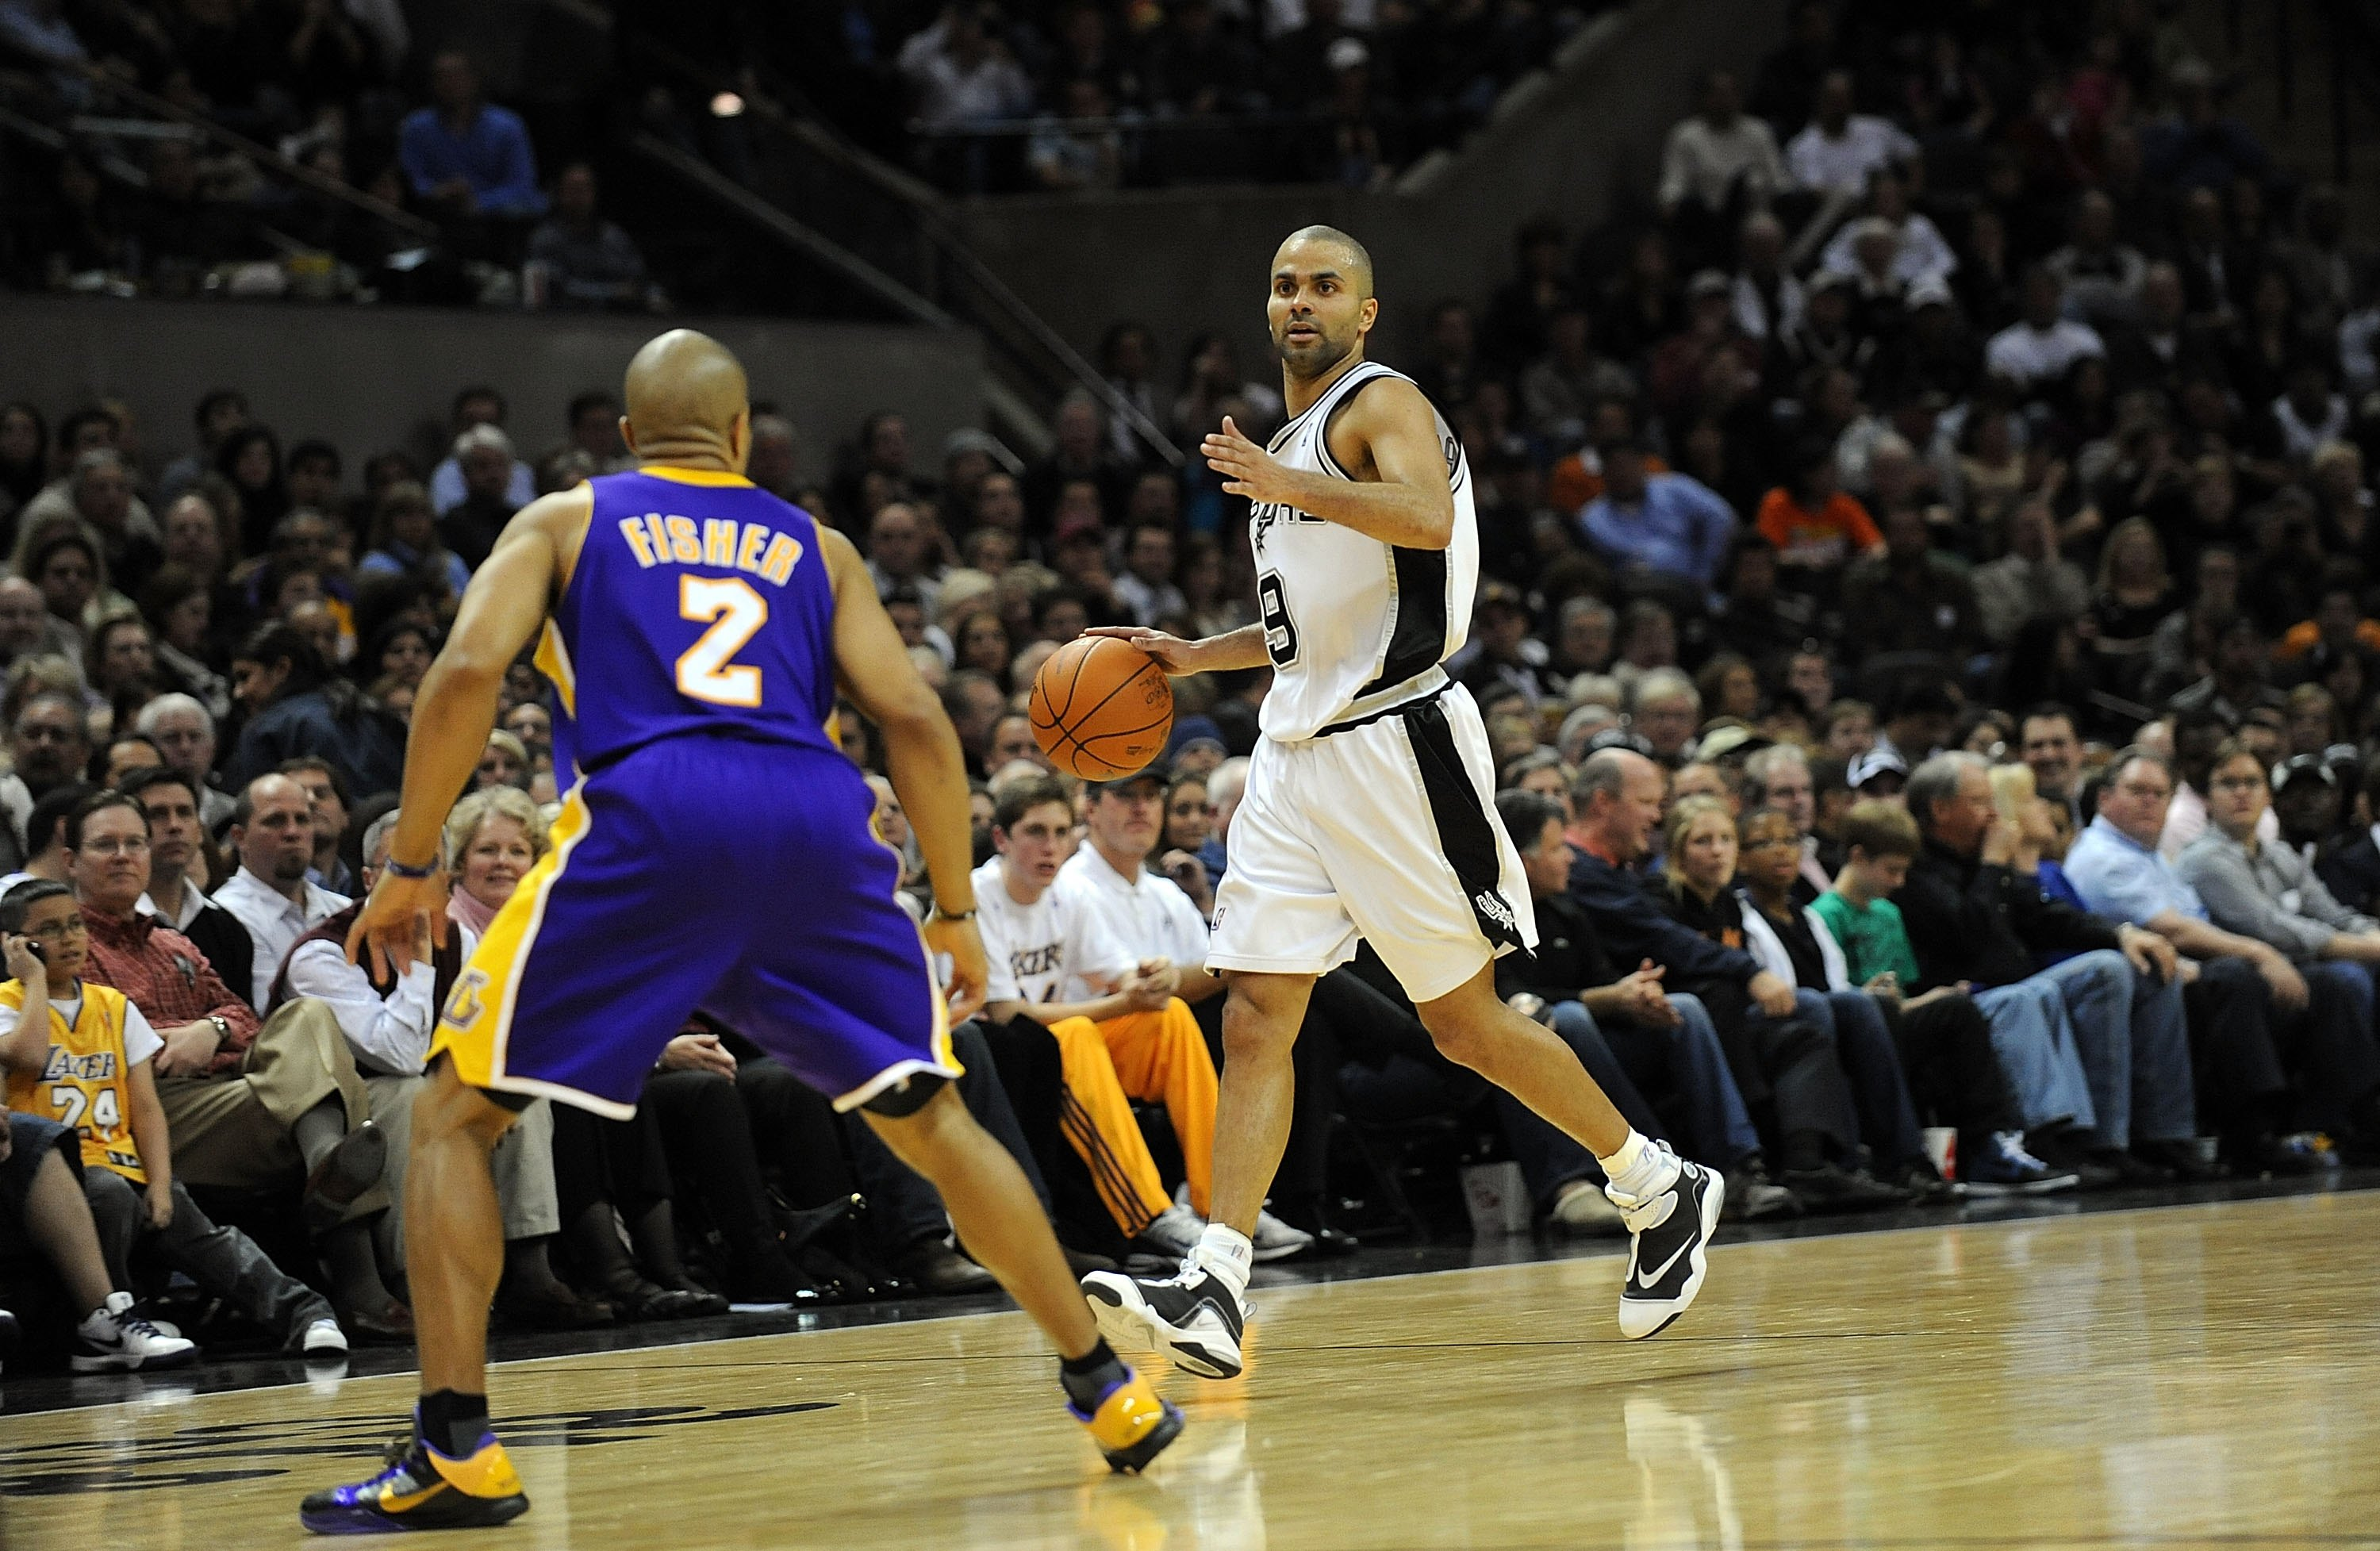 SAN ANTONIO - JANUARY 12:  Guard Tony Parker #9 of the San Antonio Spurs on January 12, 2010 at AT&T Center in San Antonio, Texas.  NOTE TO USER: User expressly acknowledges and agrees that, by downloading and/or using this Photograph, user is consenting